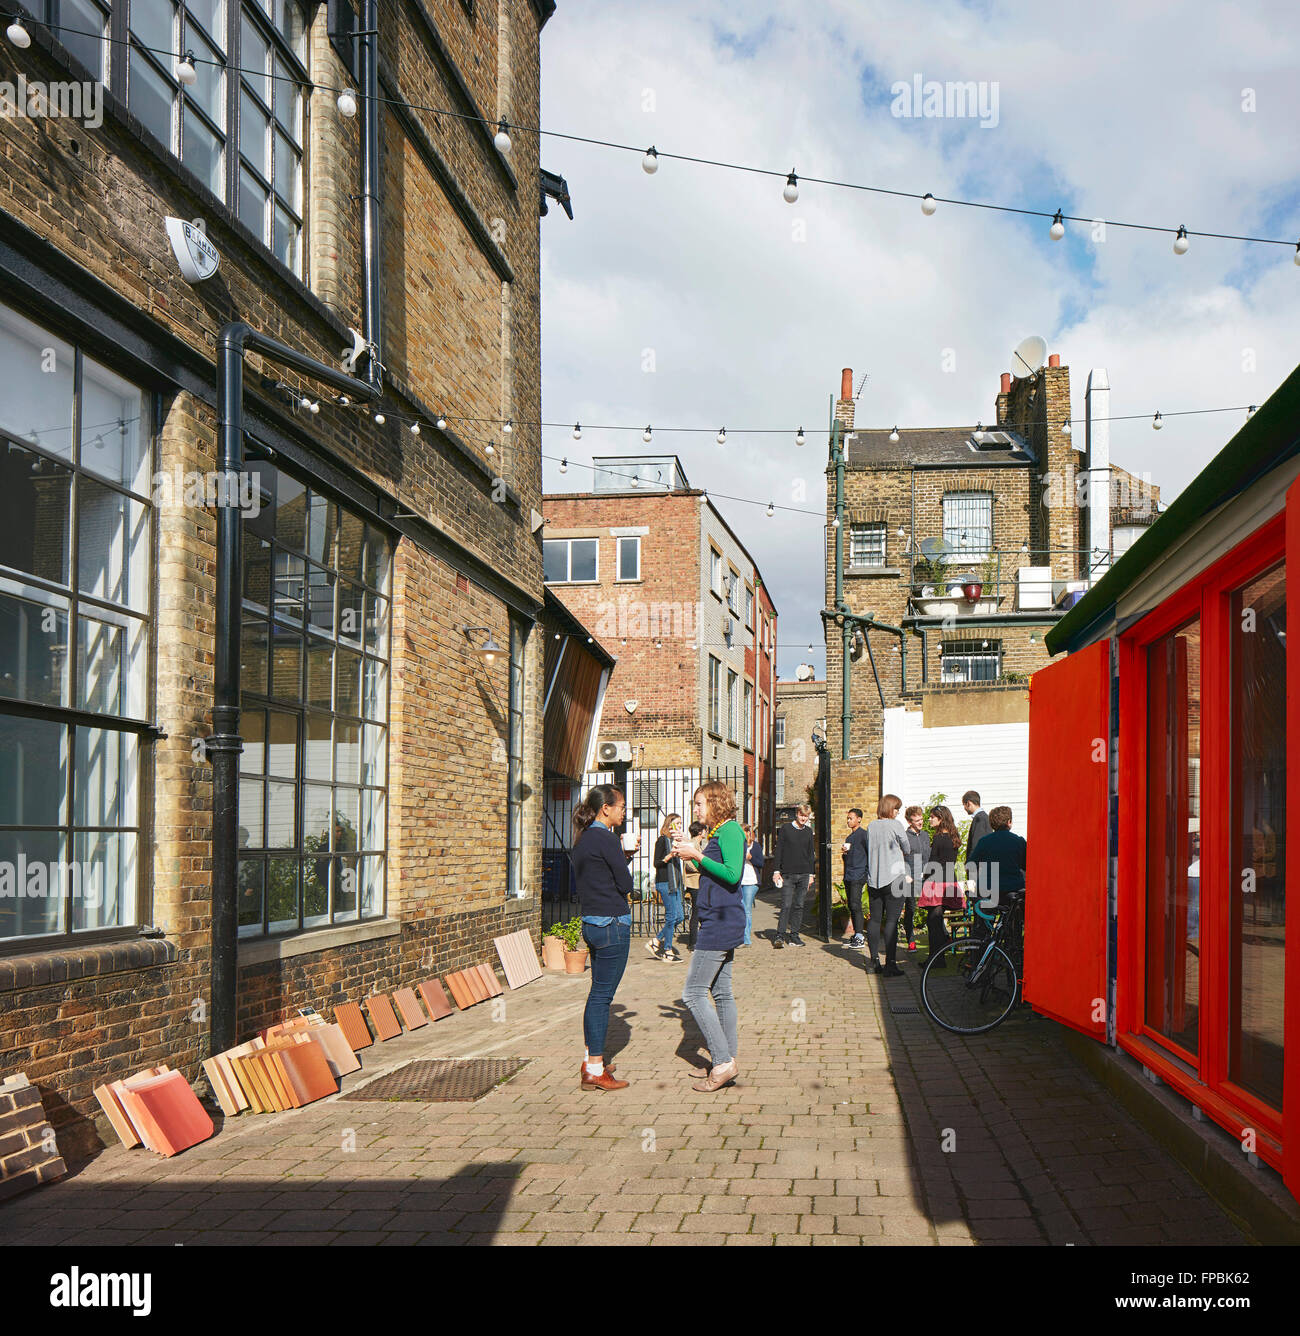 Studio yard with staff gathering. DSDHA architectural office, London, United Kingdom. Architect: DSDHA, 2015. - Stock Image